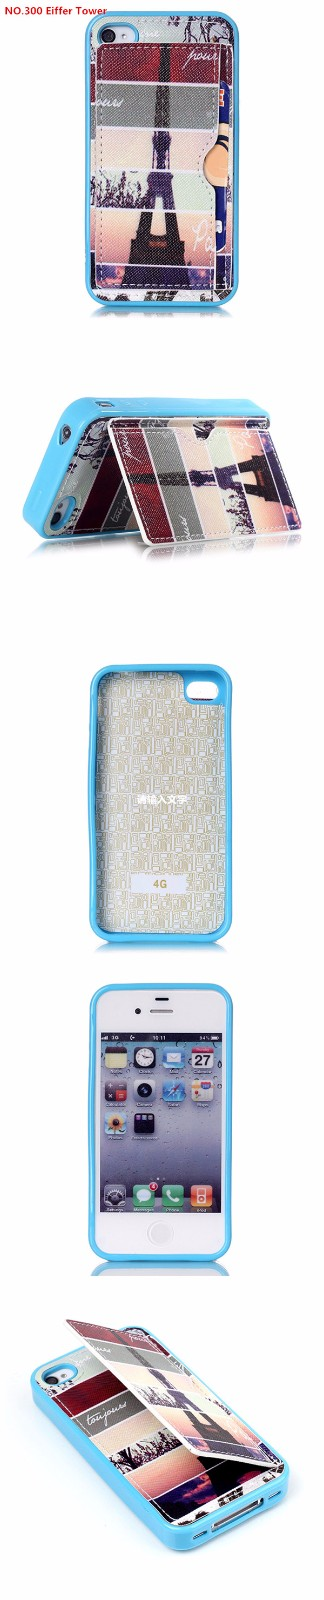 Blue Leather Creative Eiffel Tower/Tribal/Sea/Hamburg/Rabbit/Balloon/Smils Case Cover For iPhone 4s